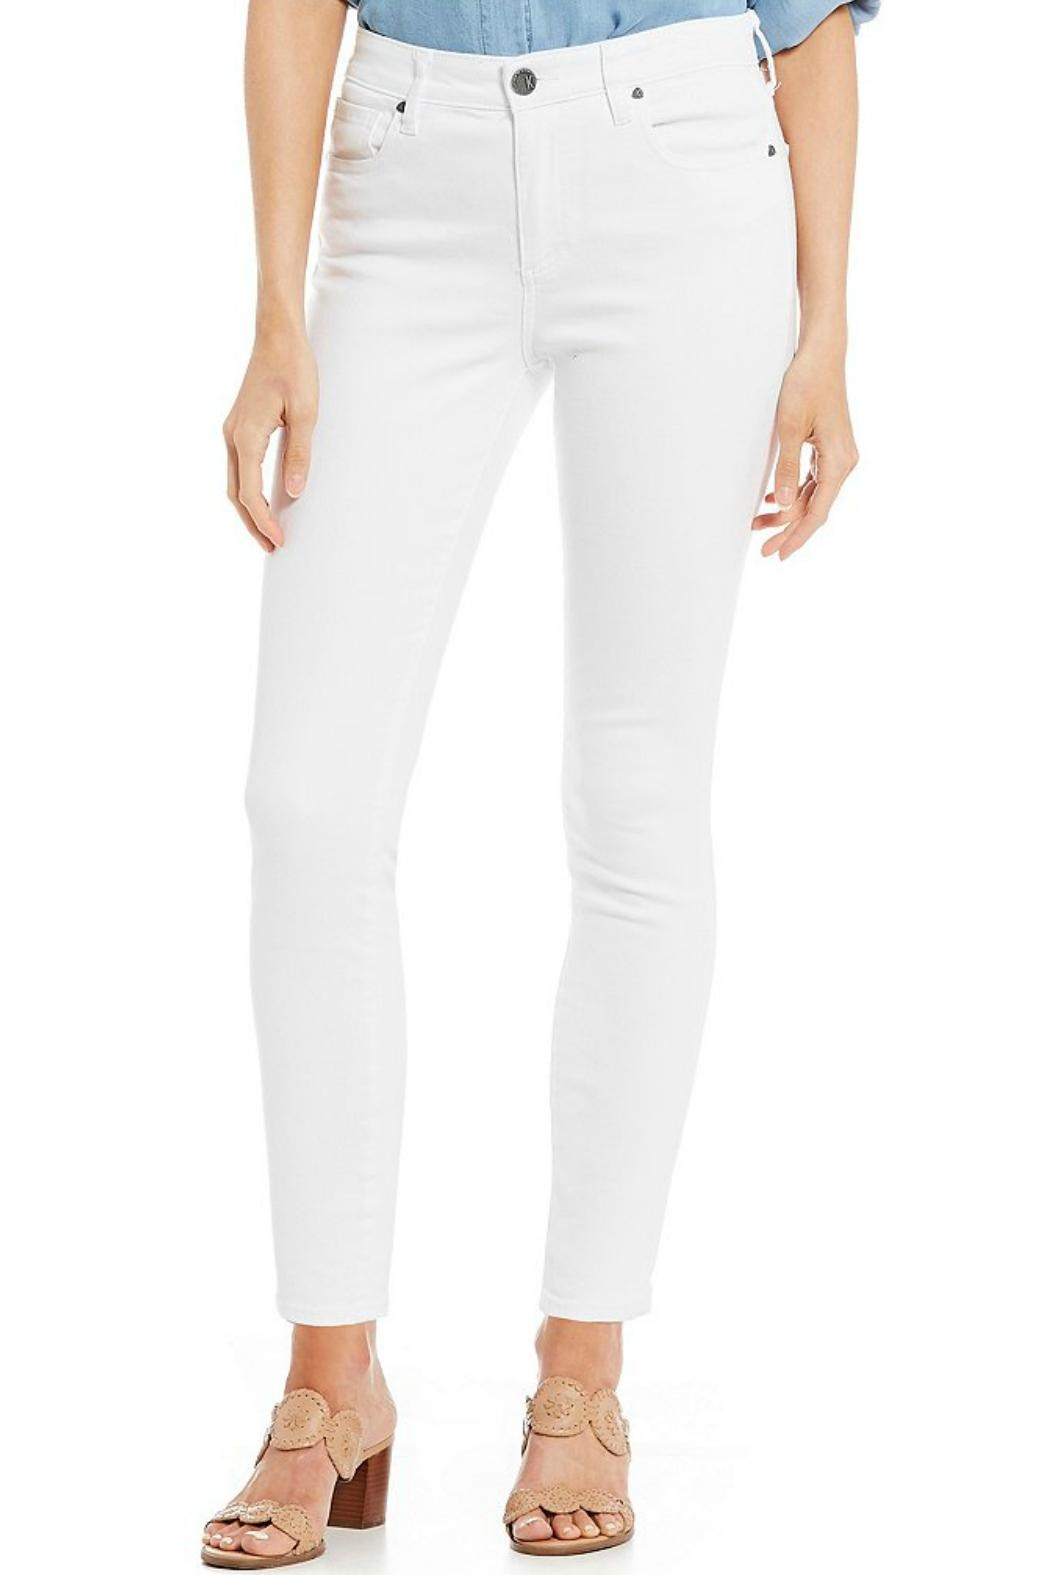 Kut from the Kloth High-Rise Ankle-Skinny Jeans - Main Image